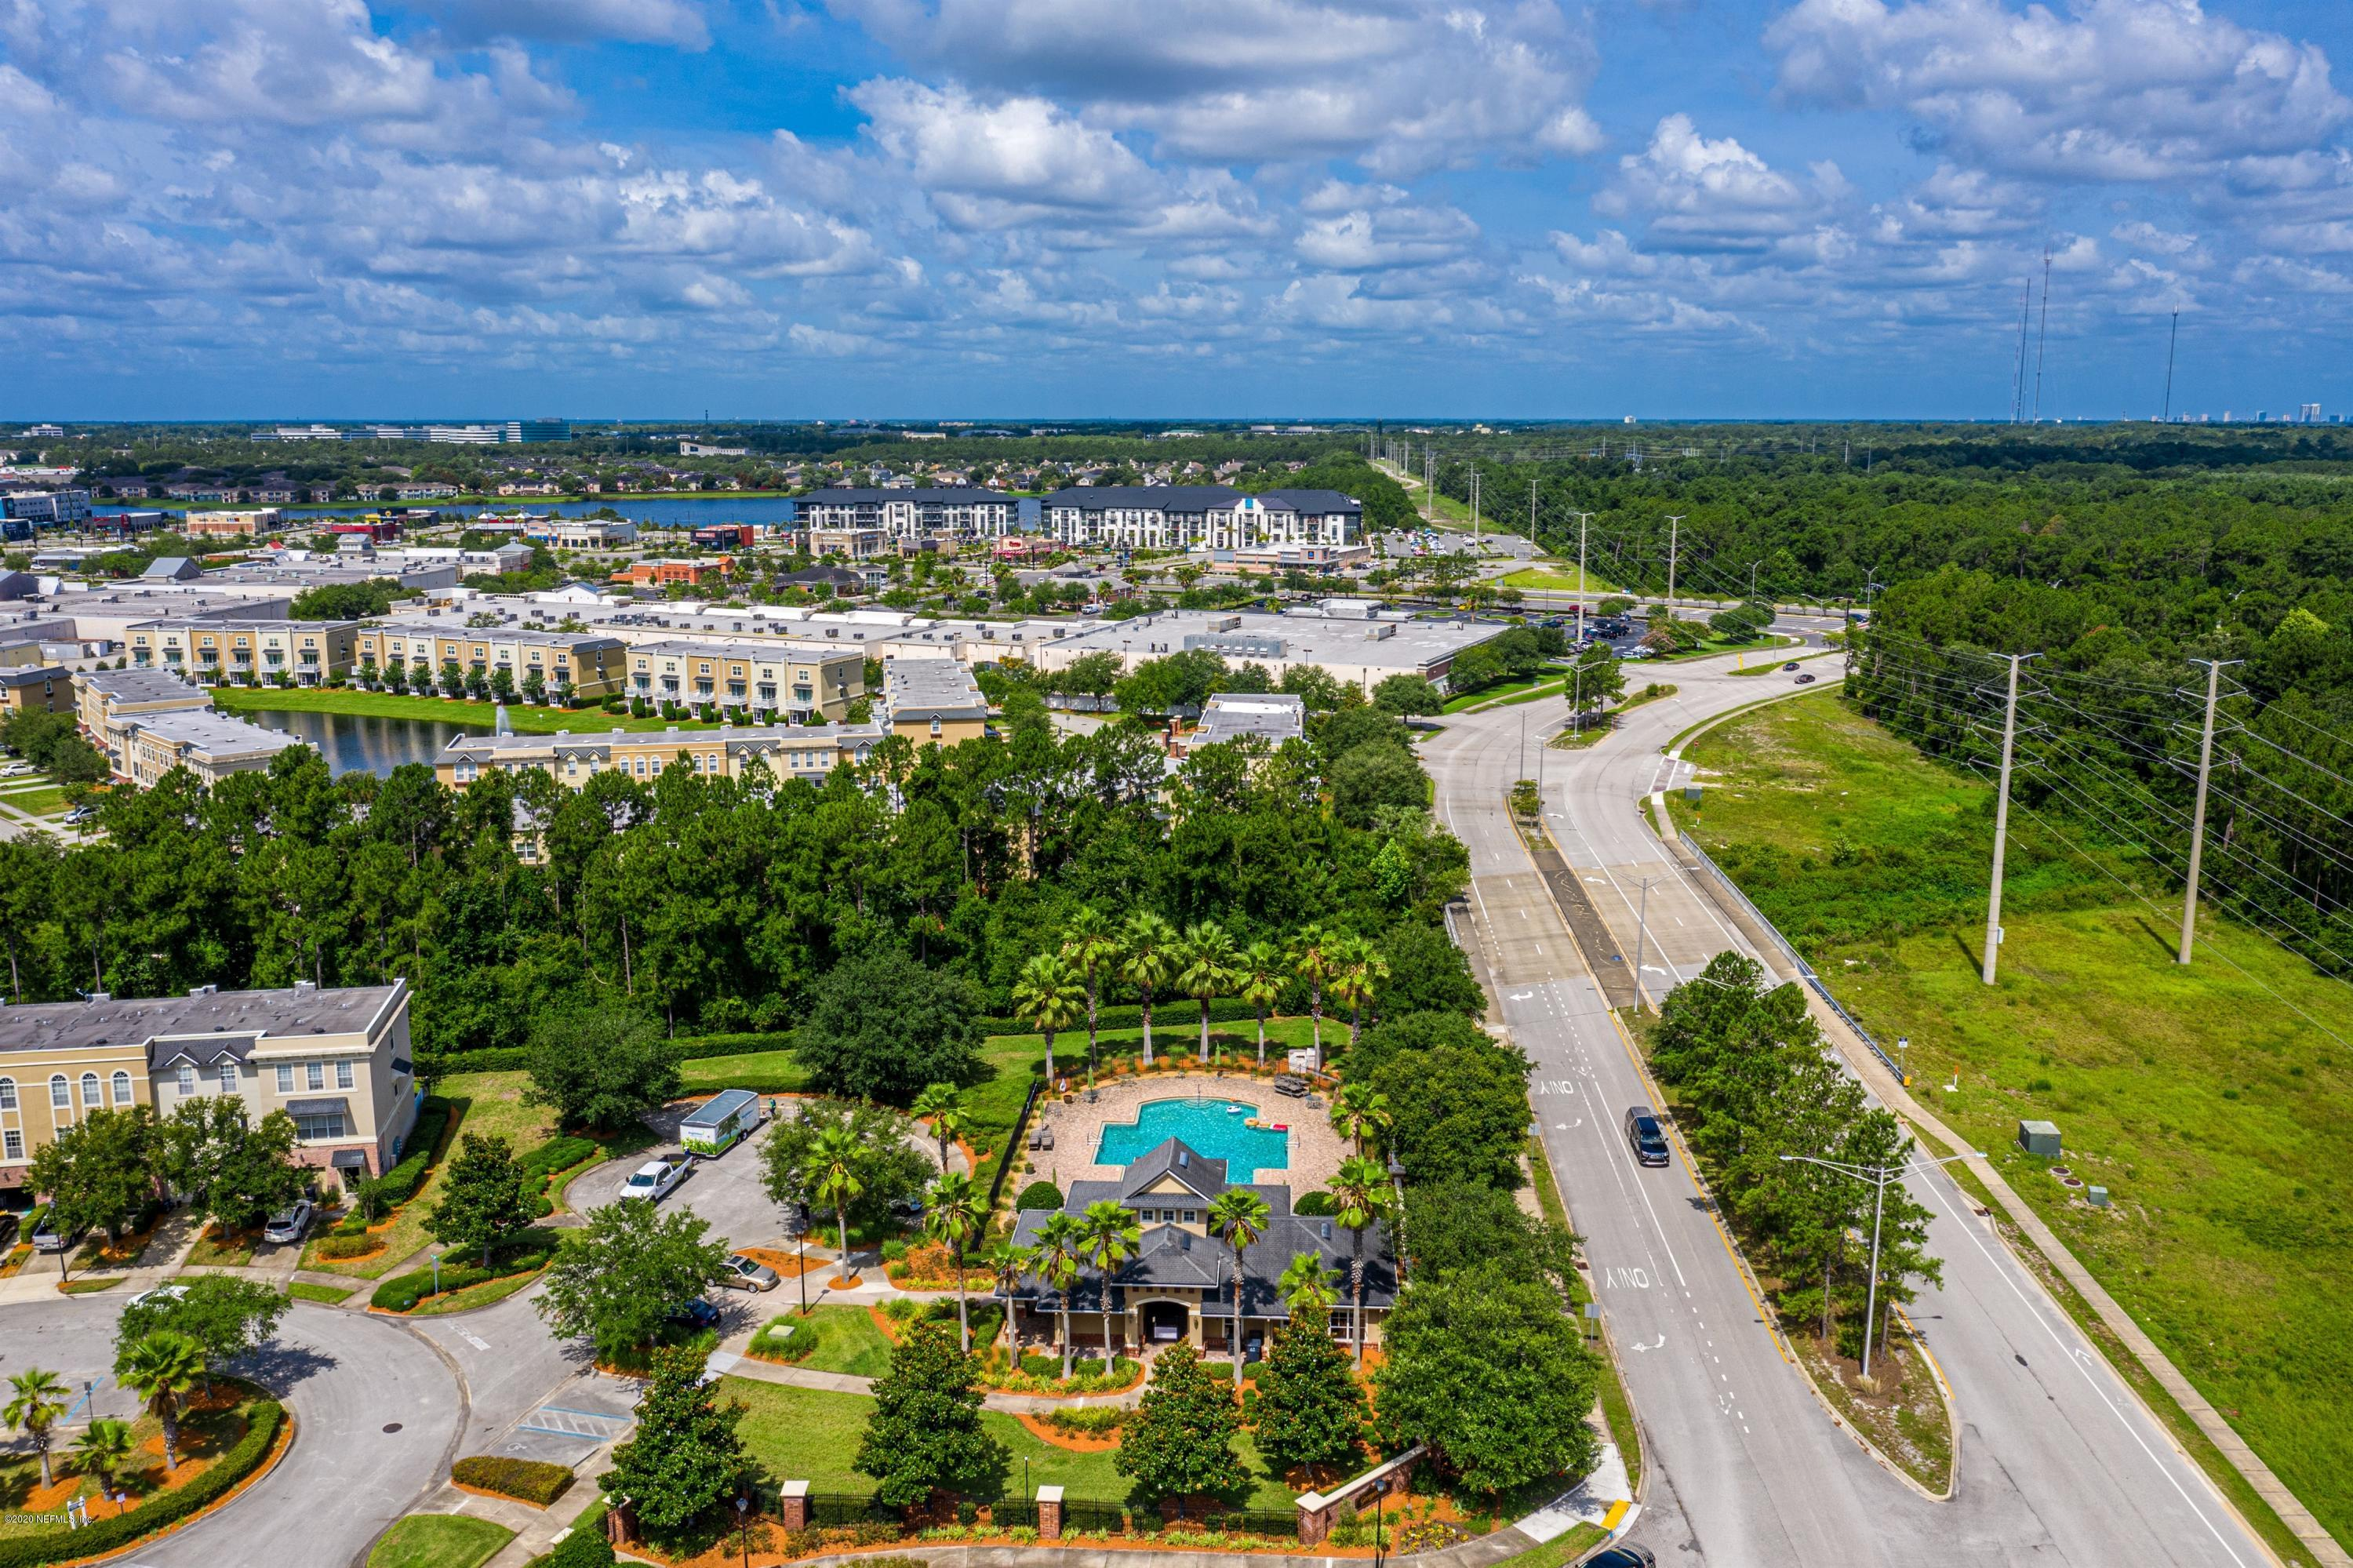 4510 CAPITAL DOME, JACKSONVILLE, FLORIDA 32246, 3 Bedrooms Bedrooms, ,2 BathroomsBathrooms,Residential,For sale,CAPITAL DOME,1056461